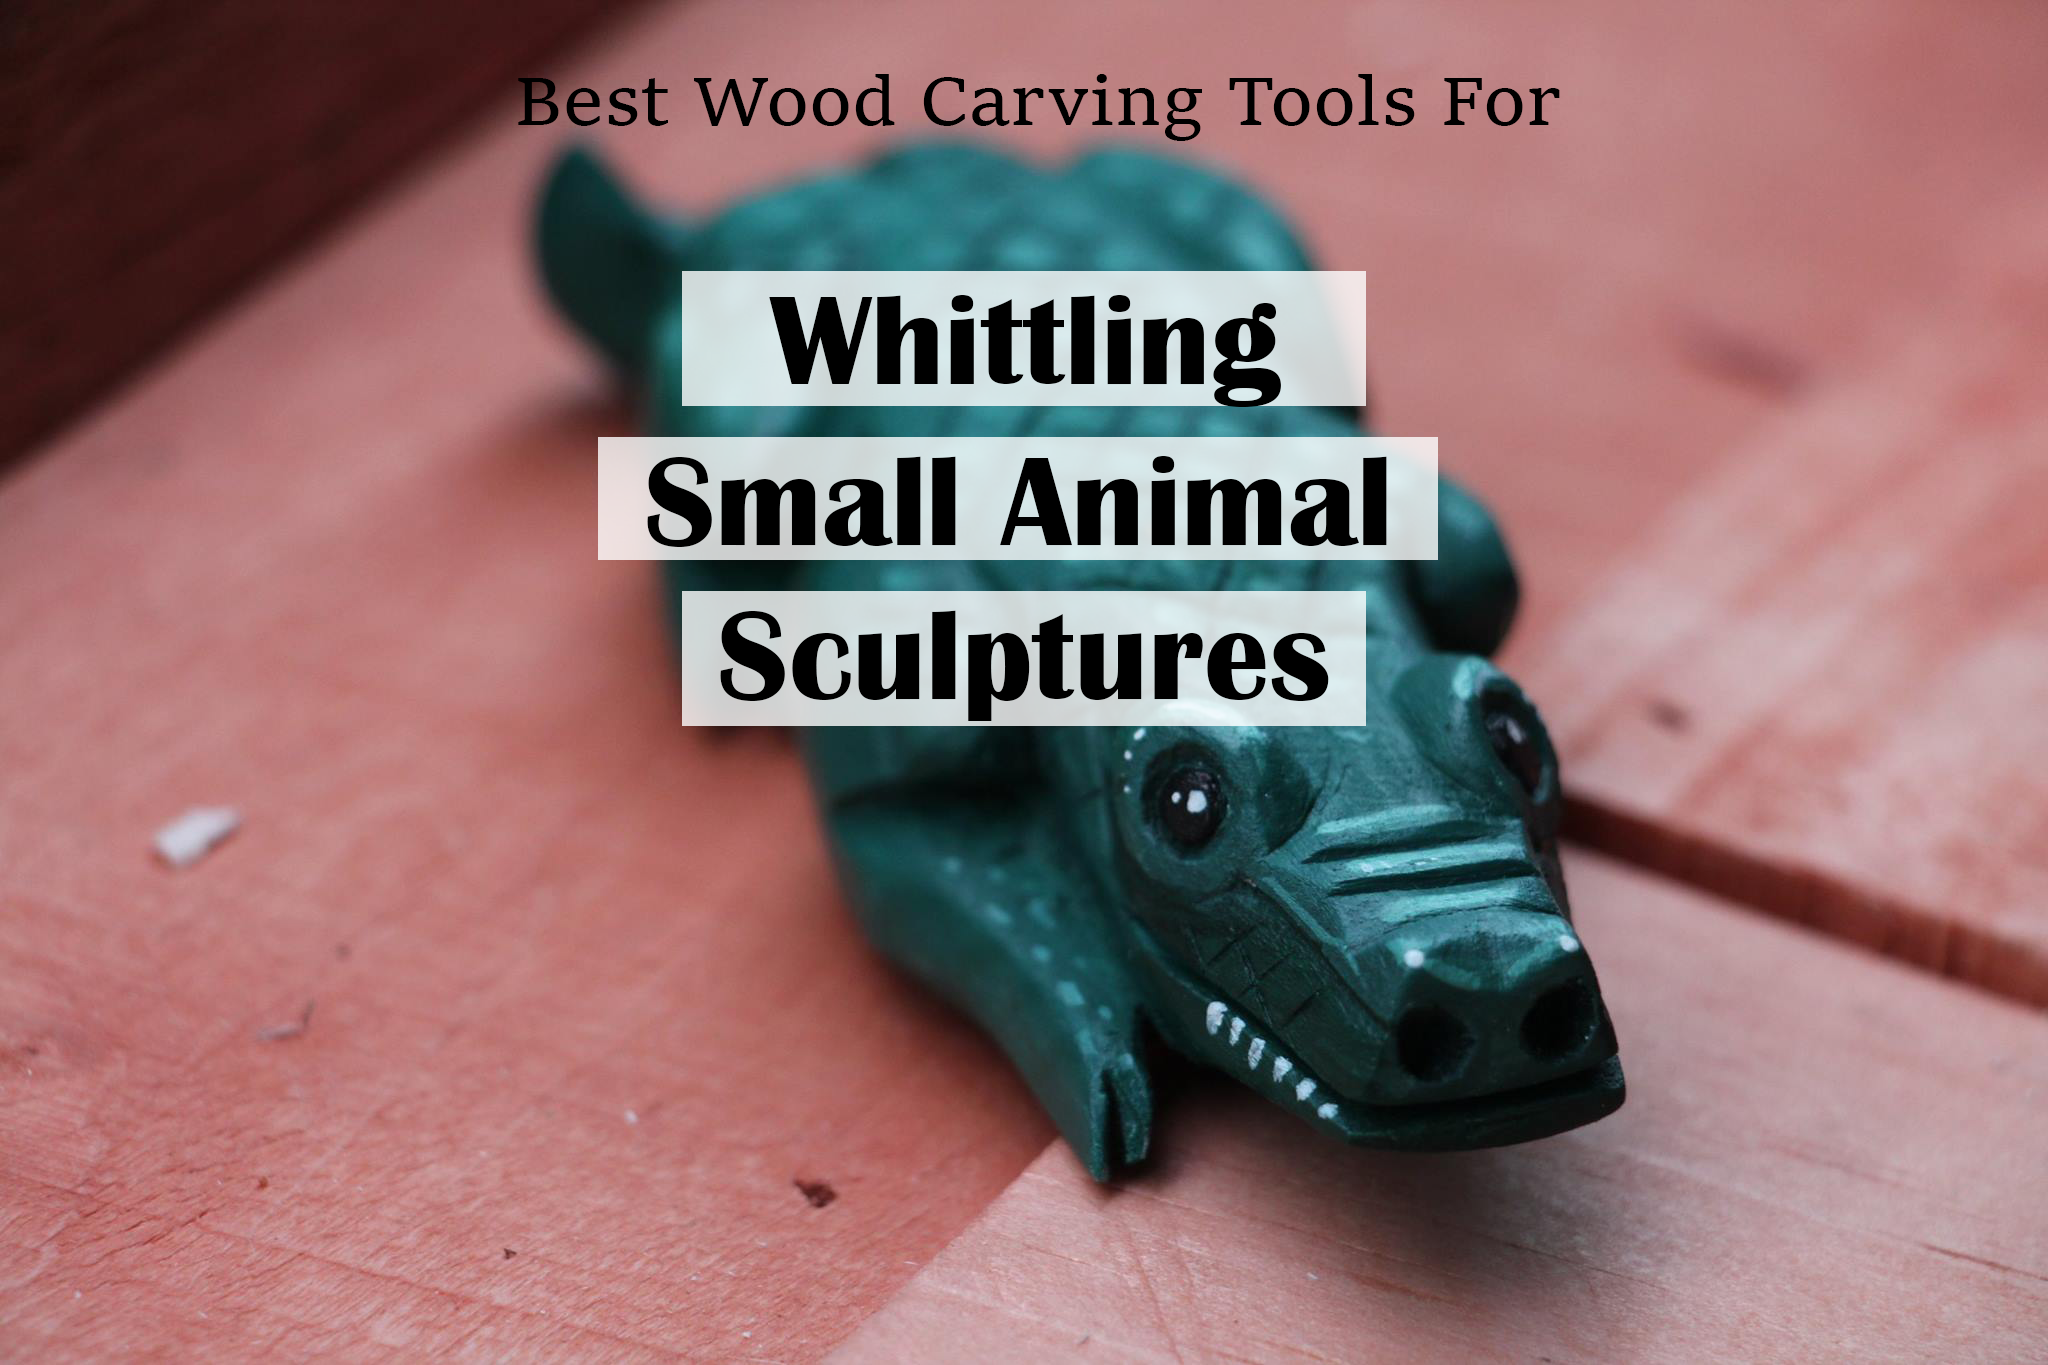 Top rated wood carving tools for whittling small sculpture animals